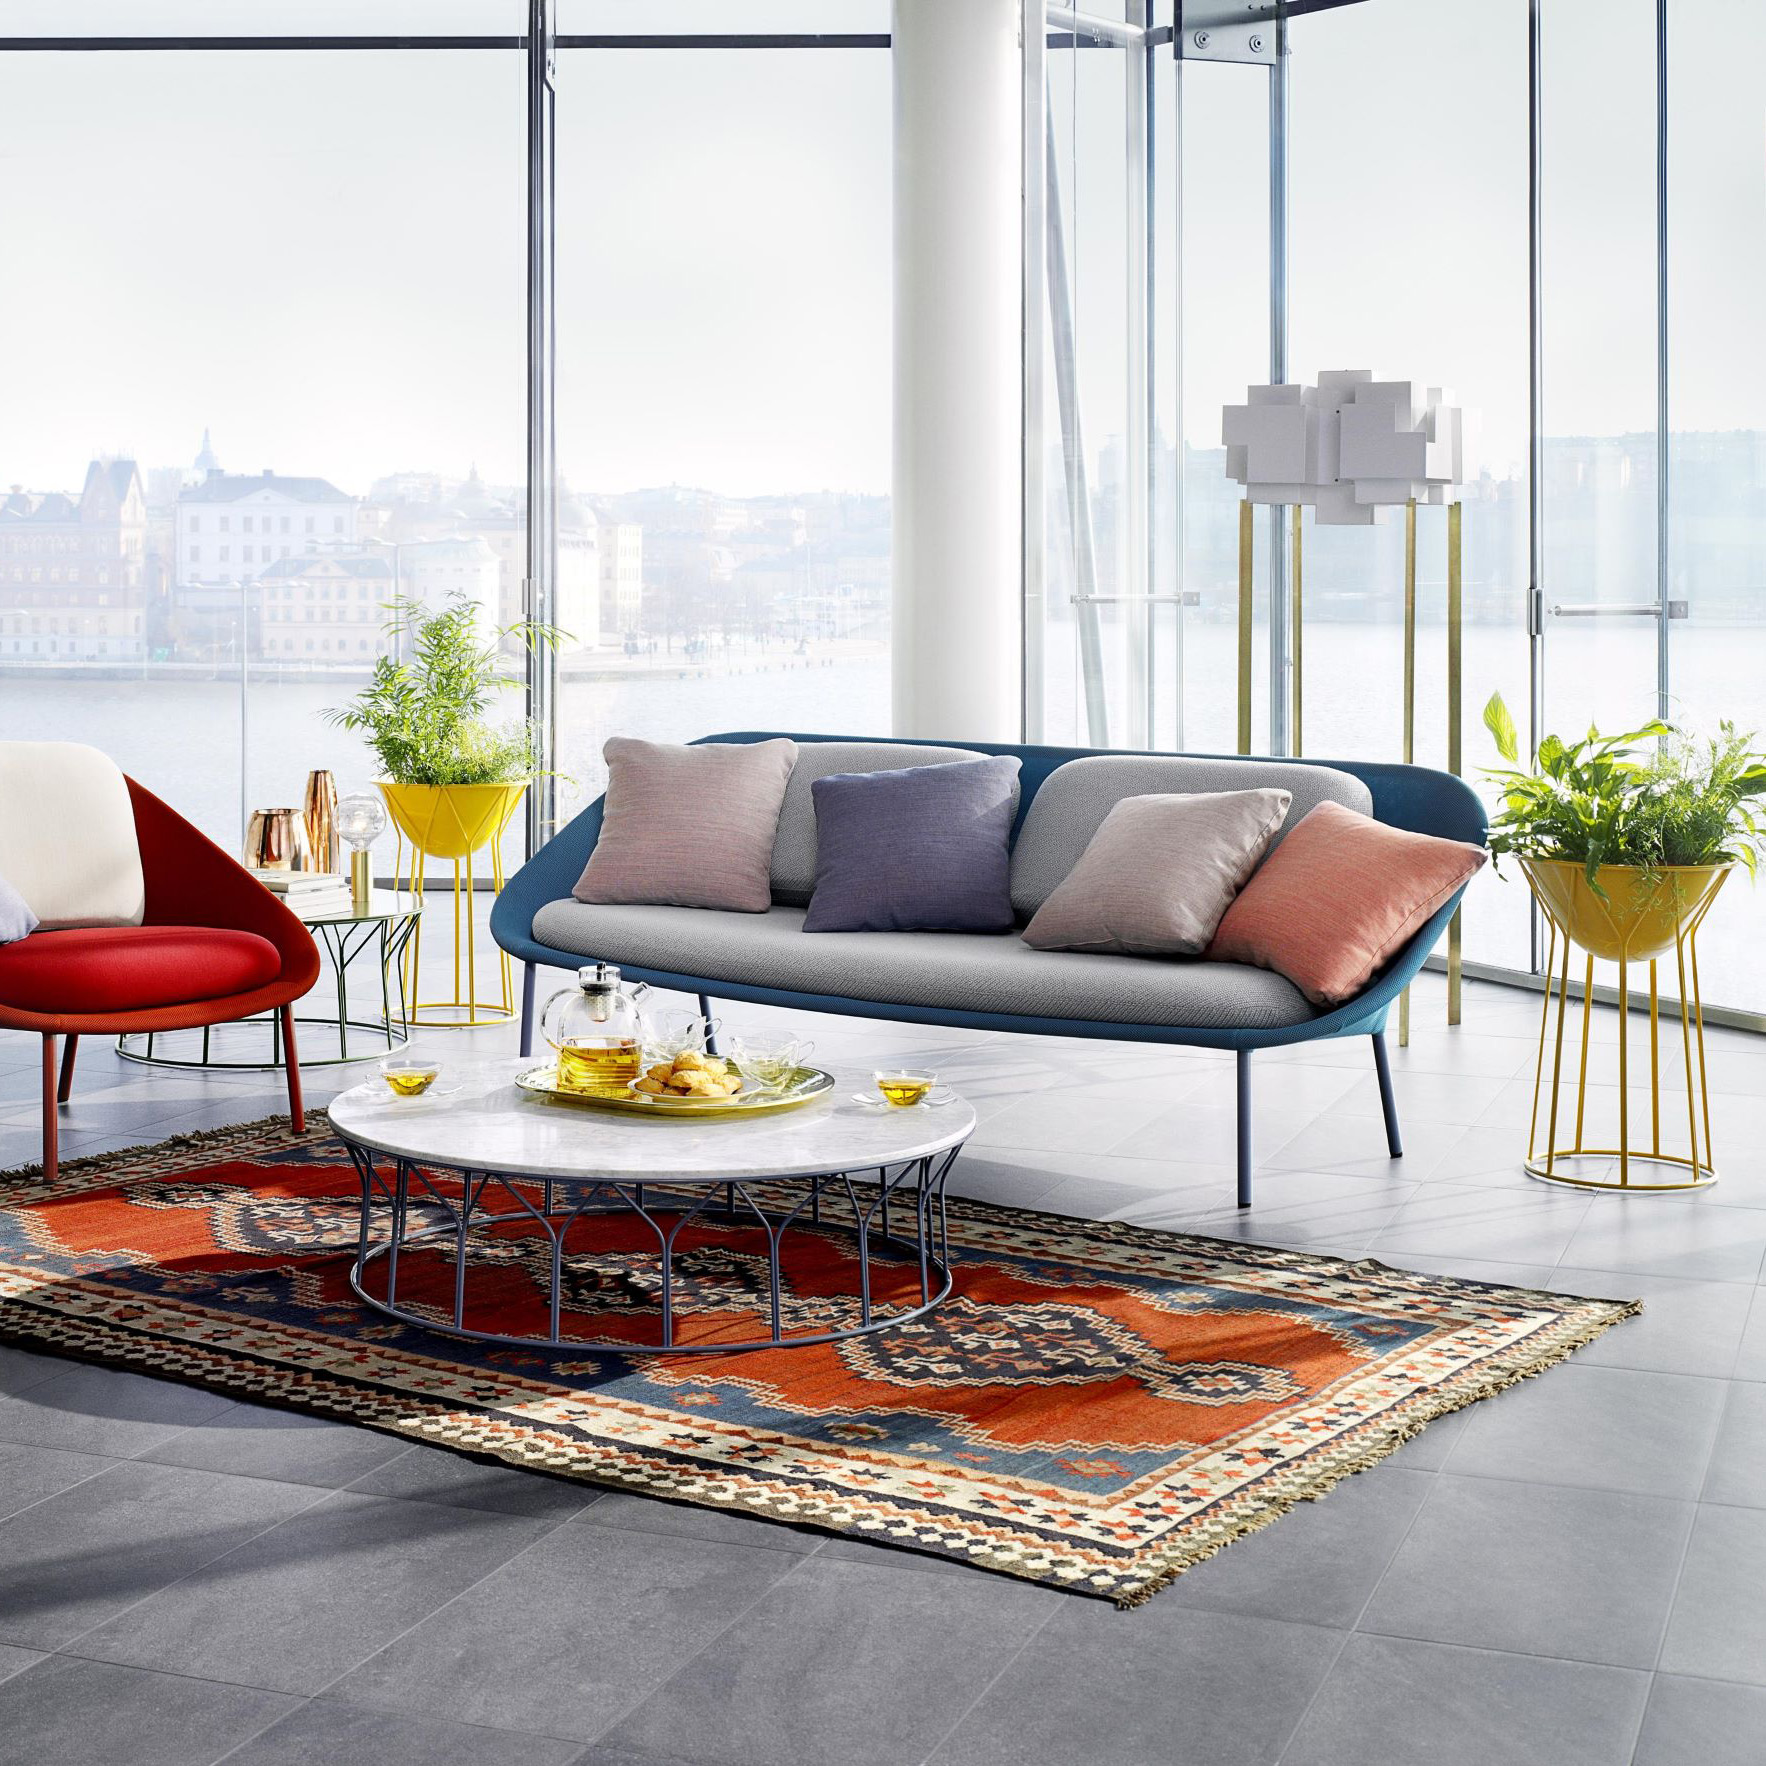 Netframe Sofa Lounge Seating Design By Cate Amp Nelson